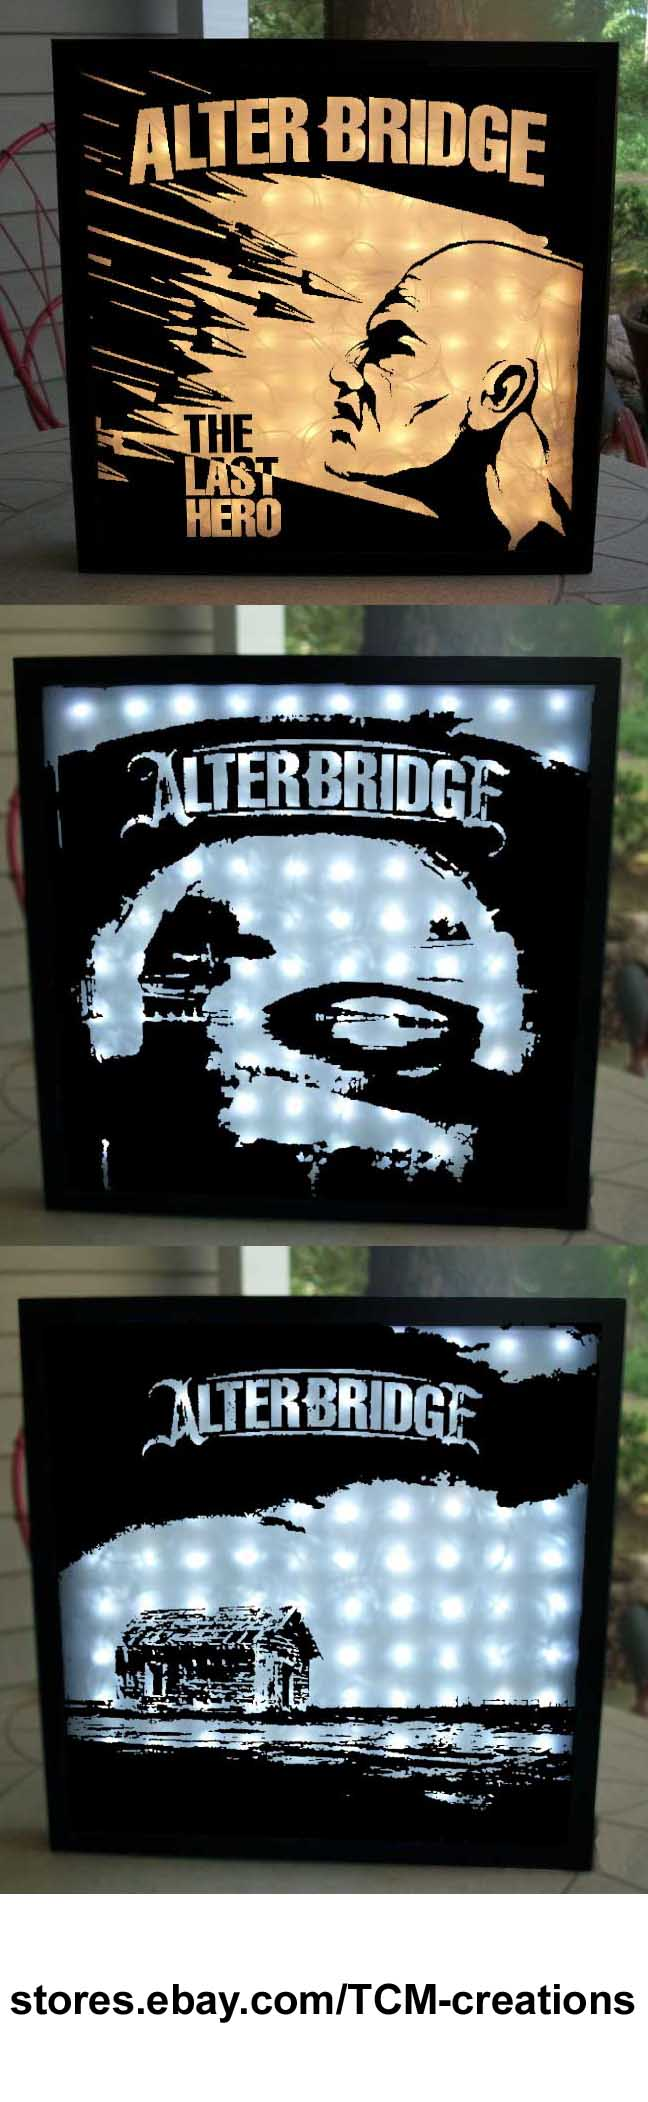 Alter Bridge Shadow Boxes With Led Lighting One Day Remains The